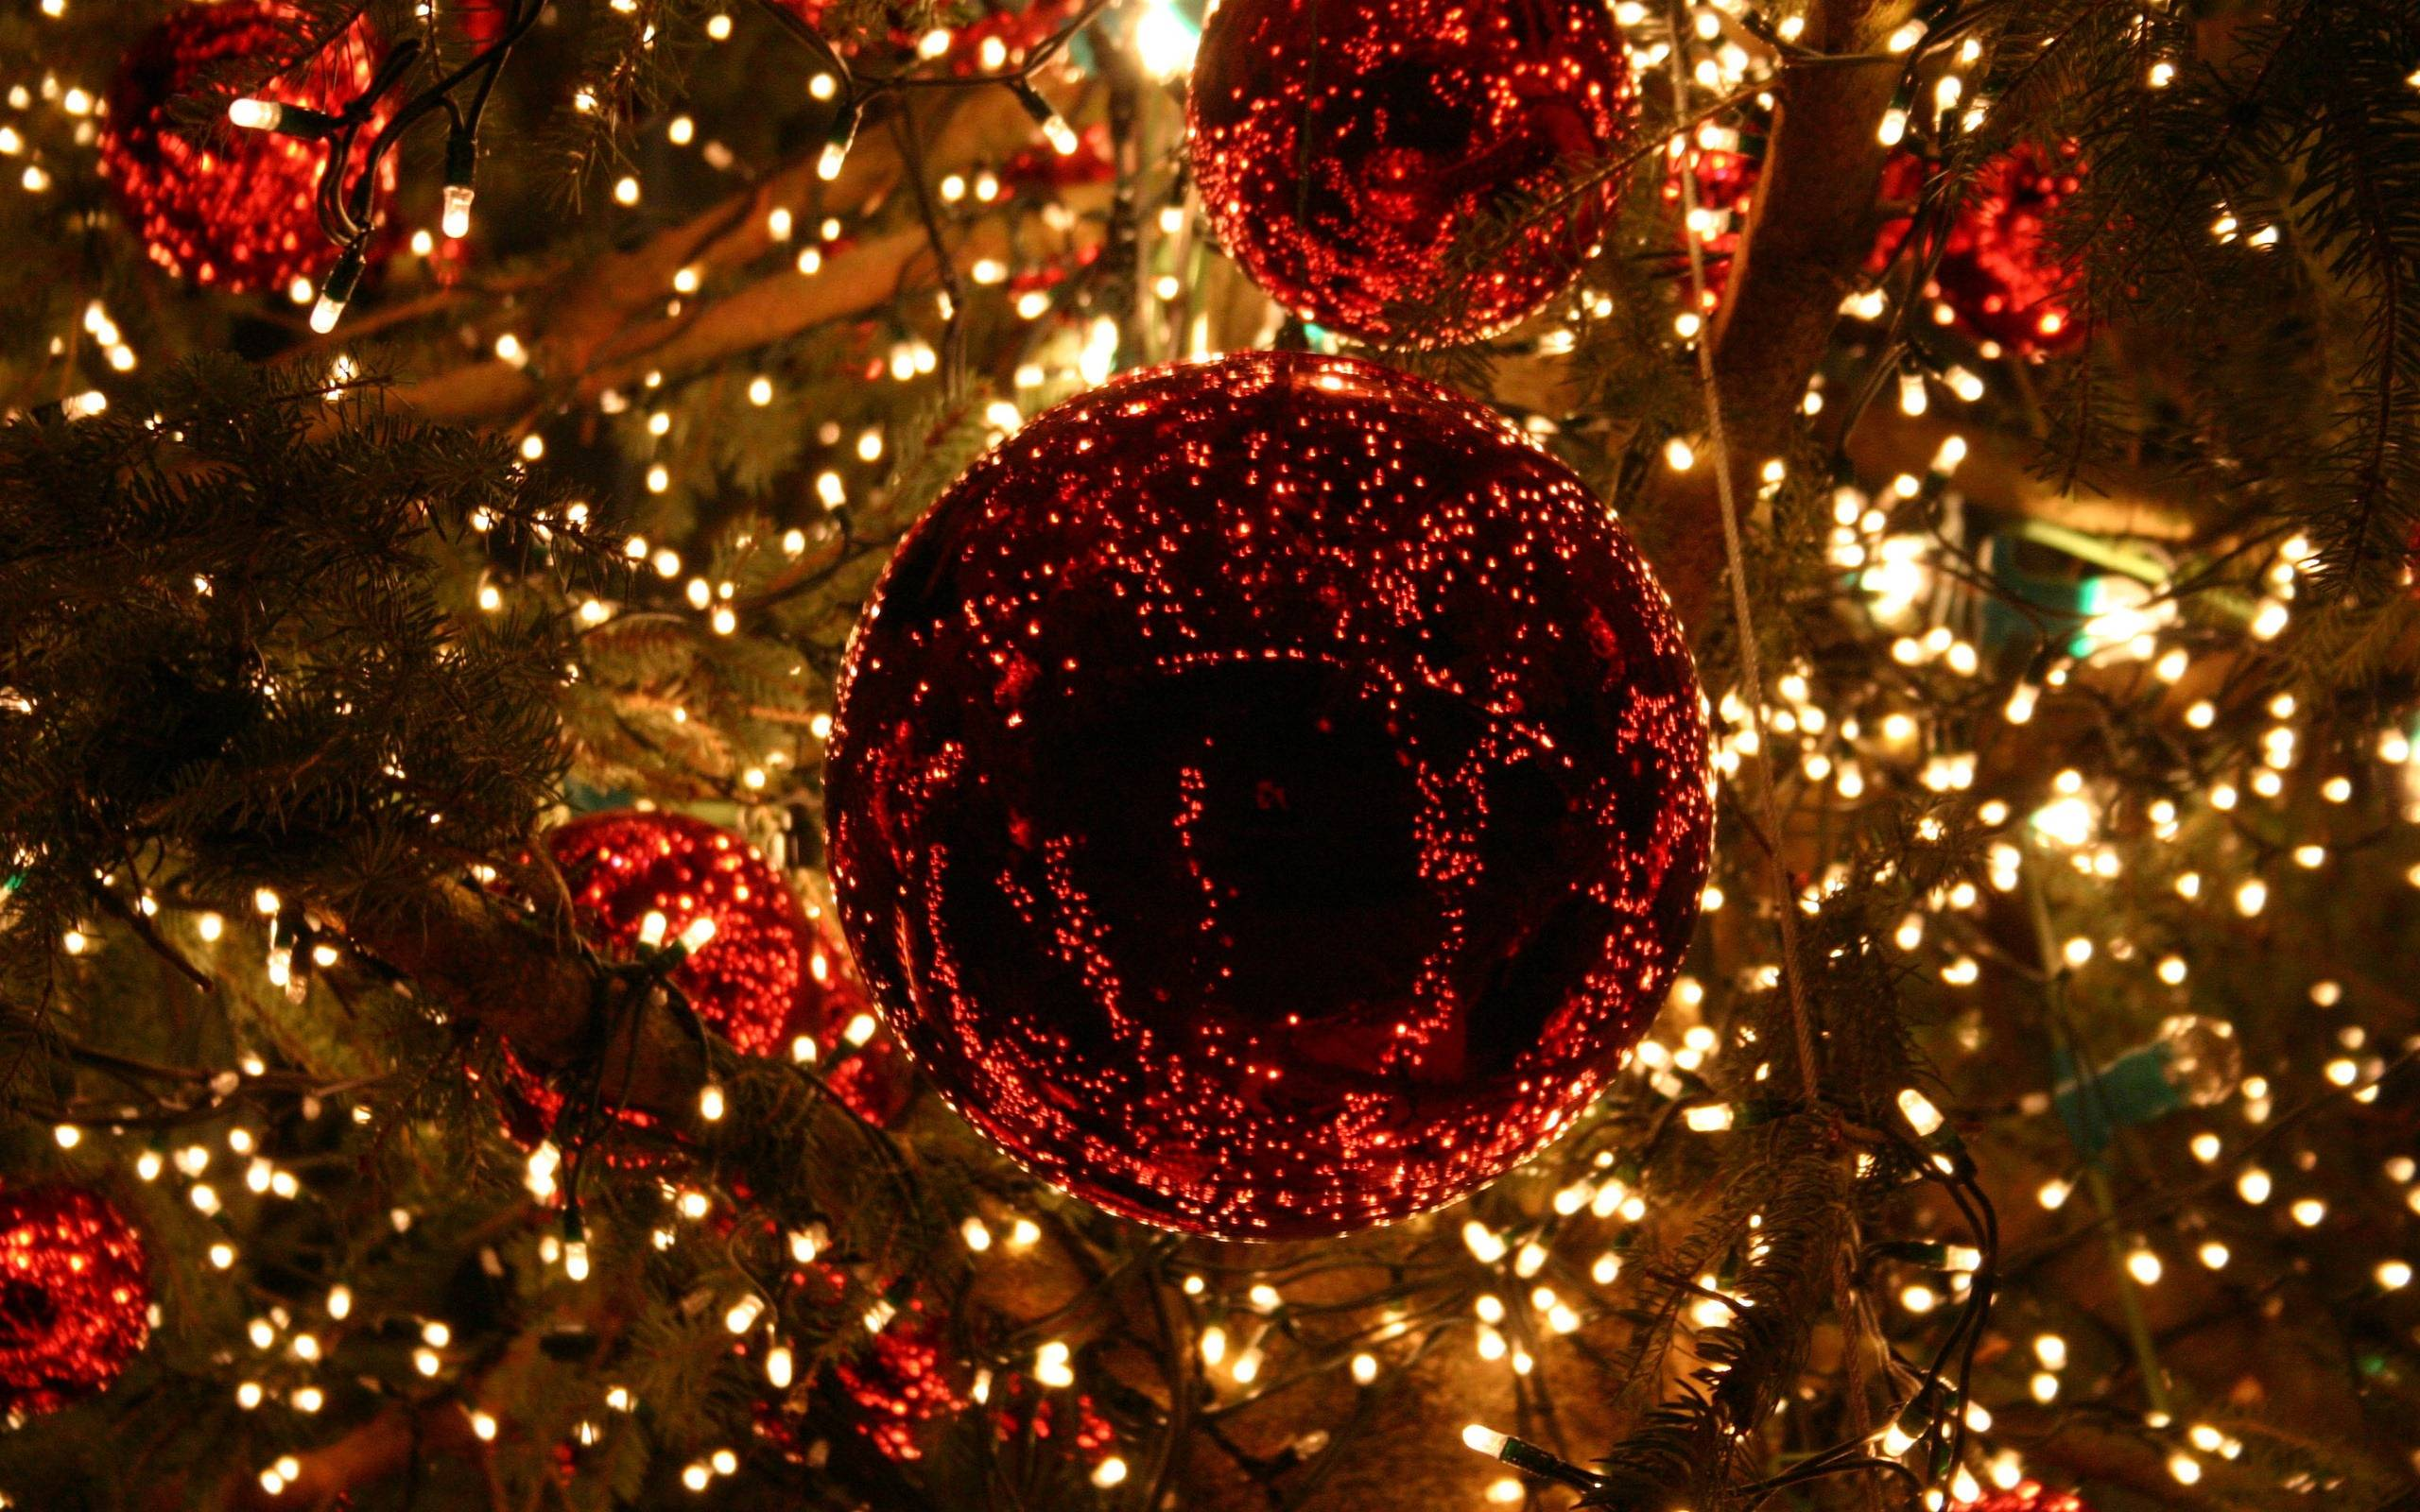 2560x1600 Christmas Lights Wallpapers